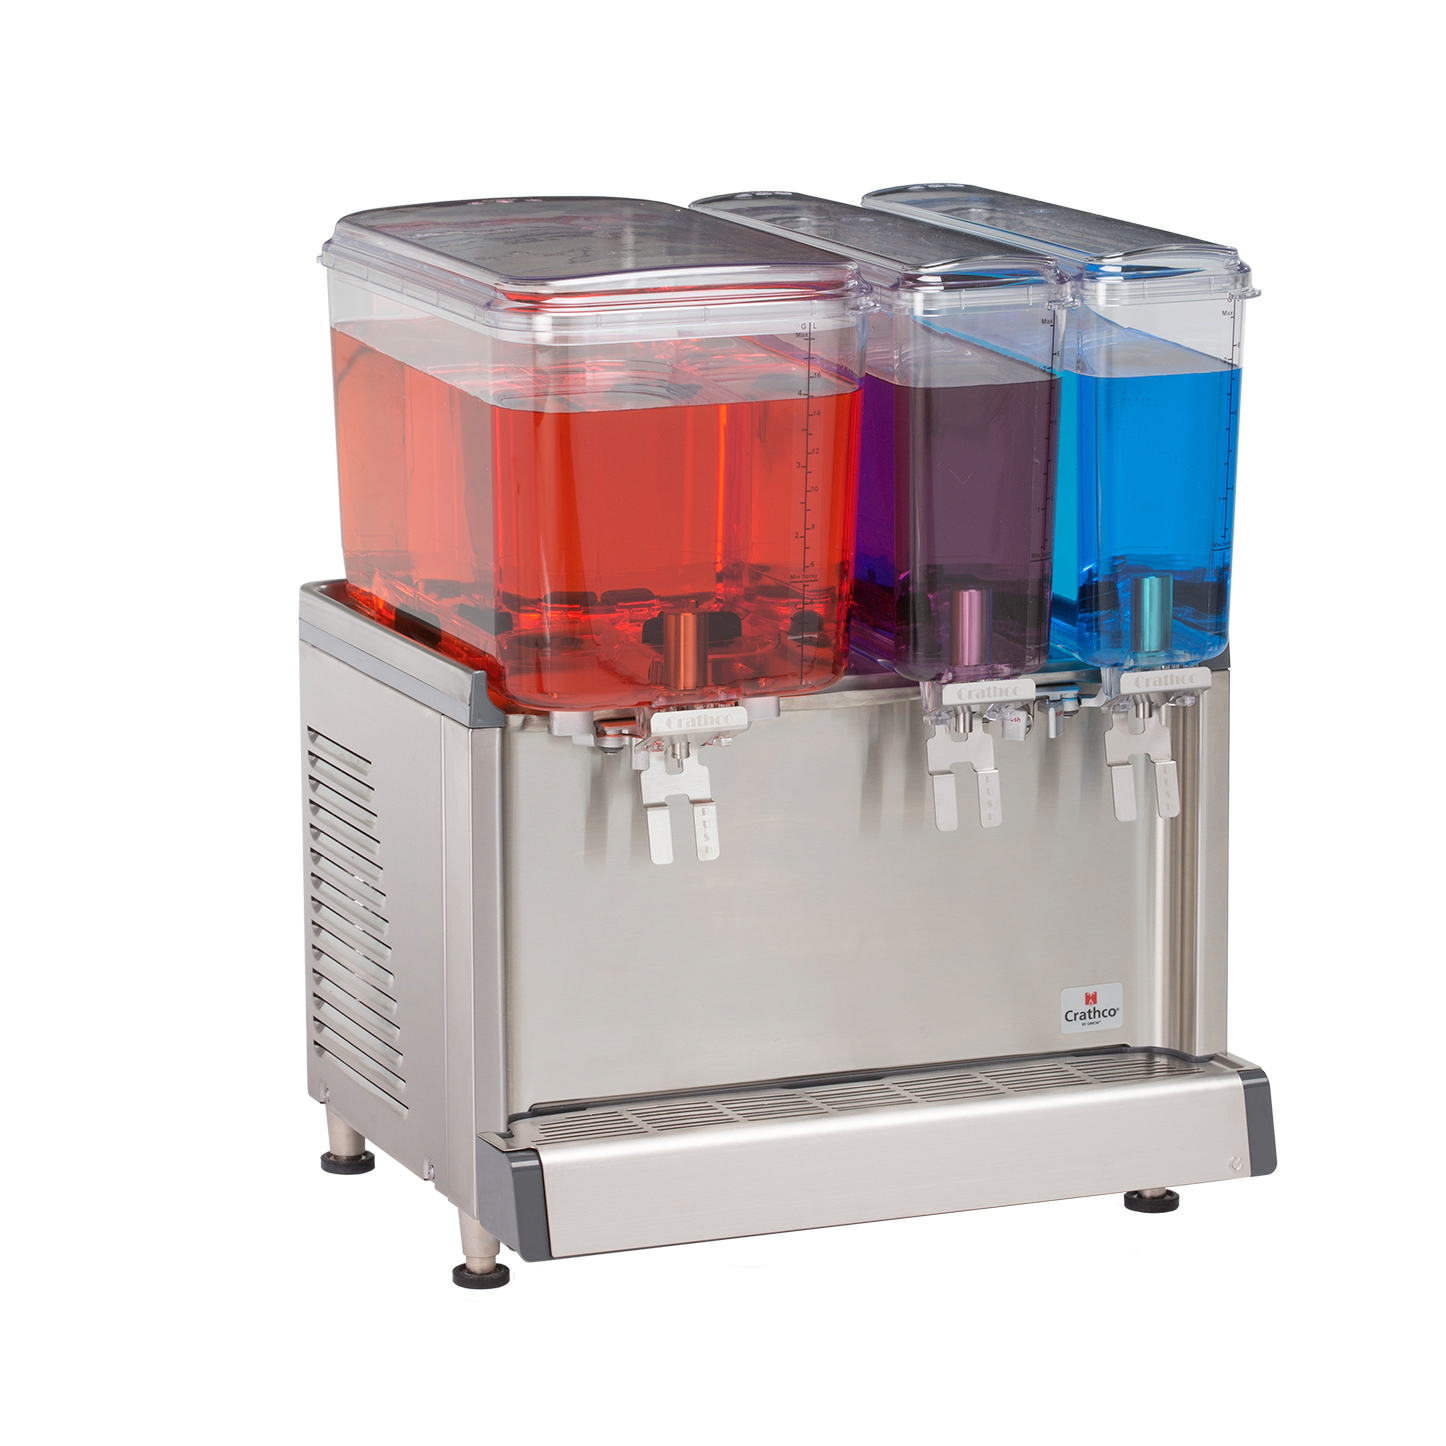 Grindmaster-Cecilware CS-3D-16 beverage dispenser, electric (cold)